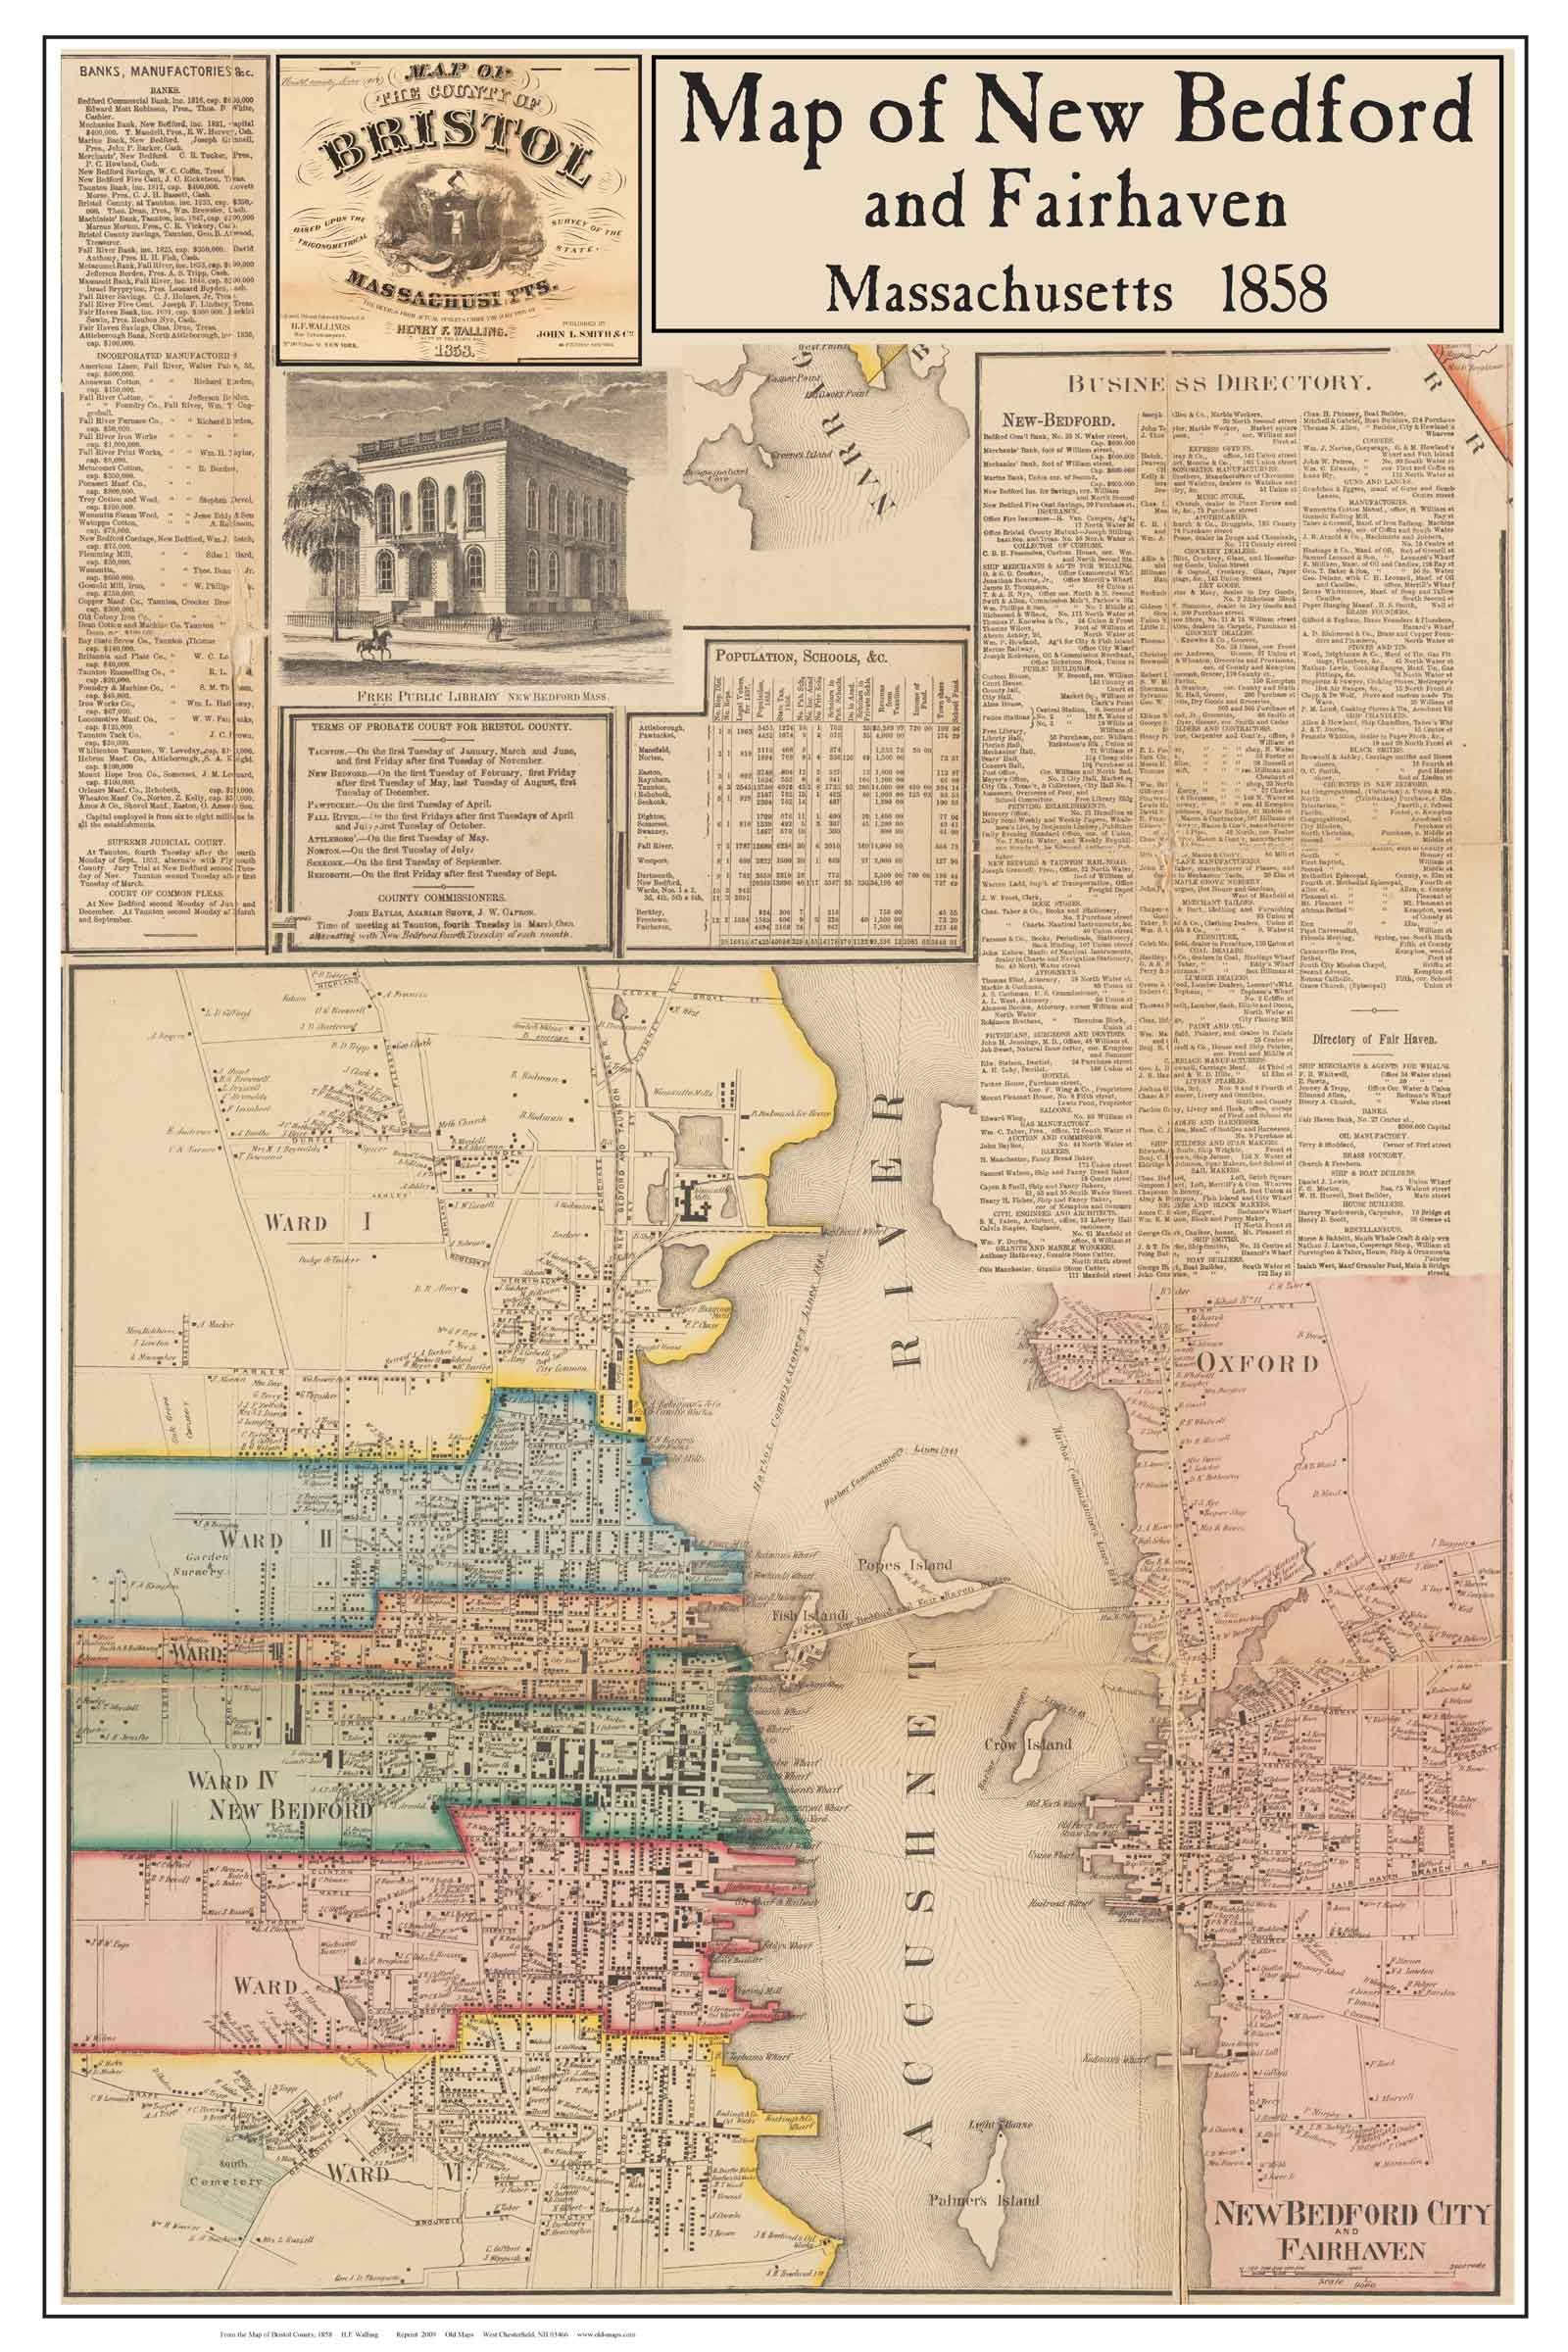 new bedford maps New Bedford MA 1858 Bristol County Map APT